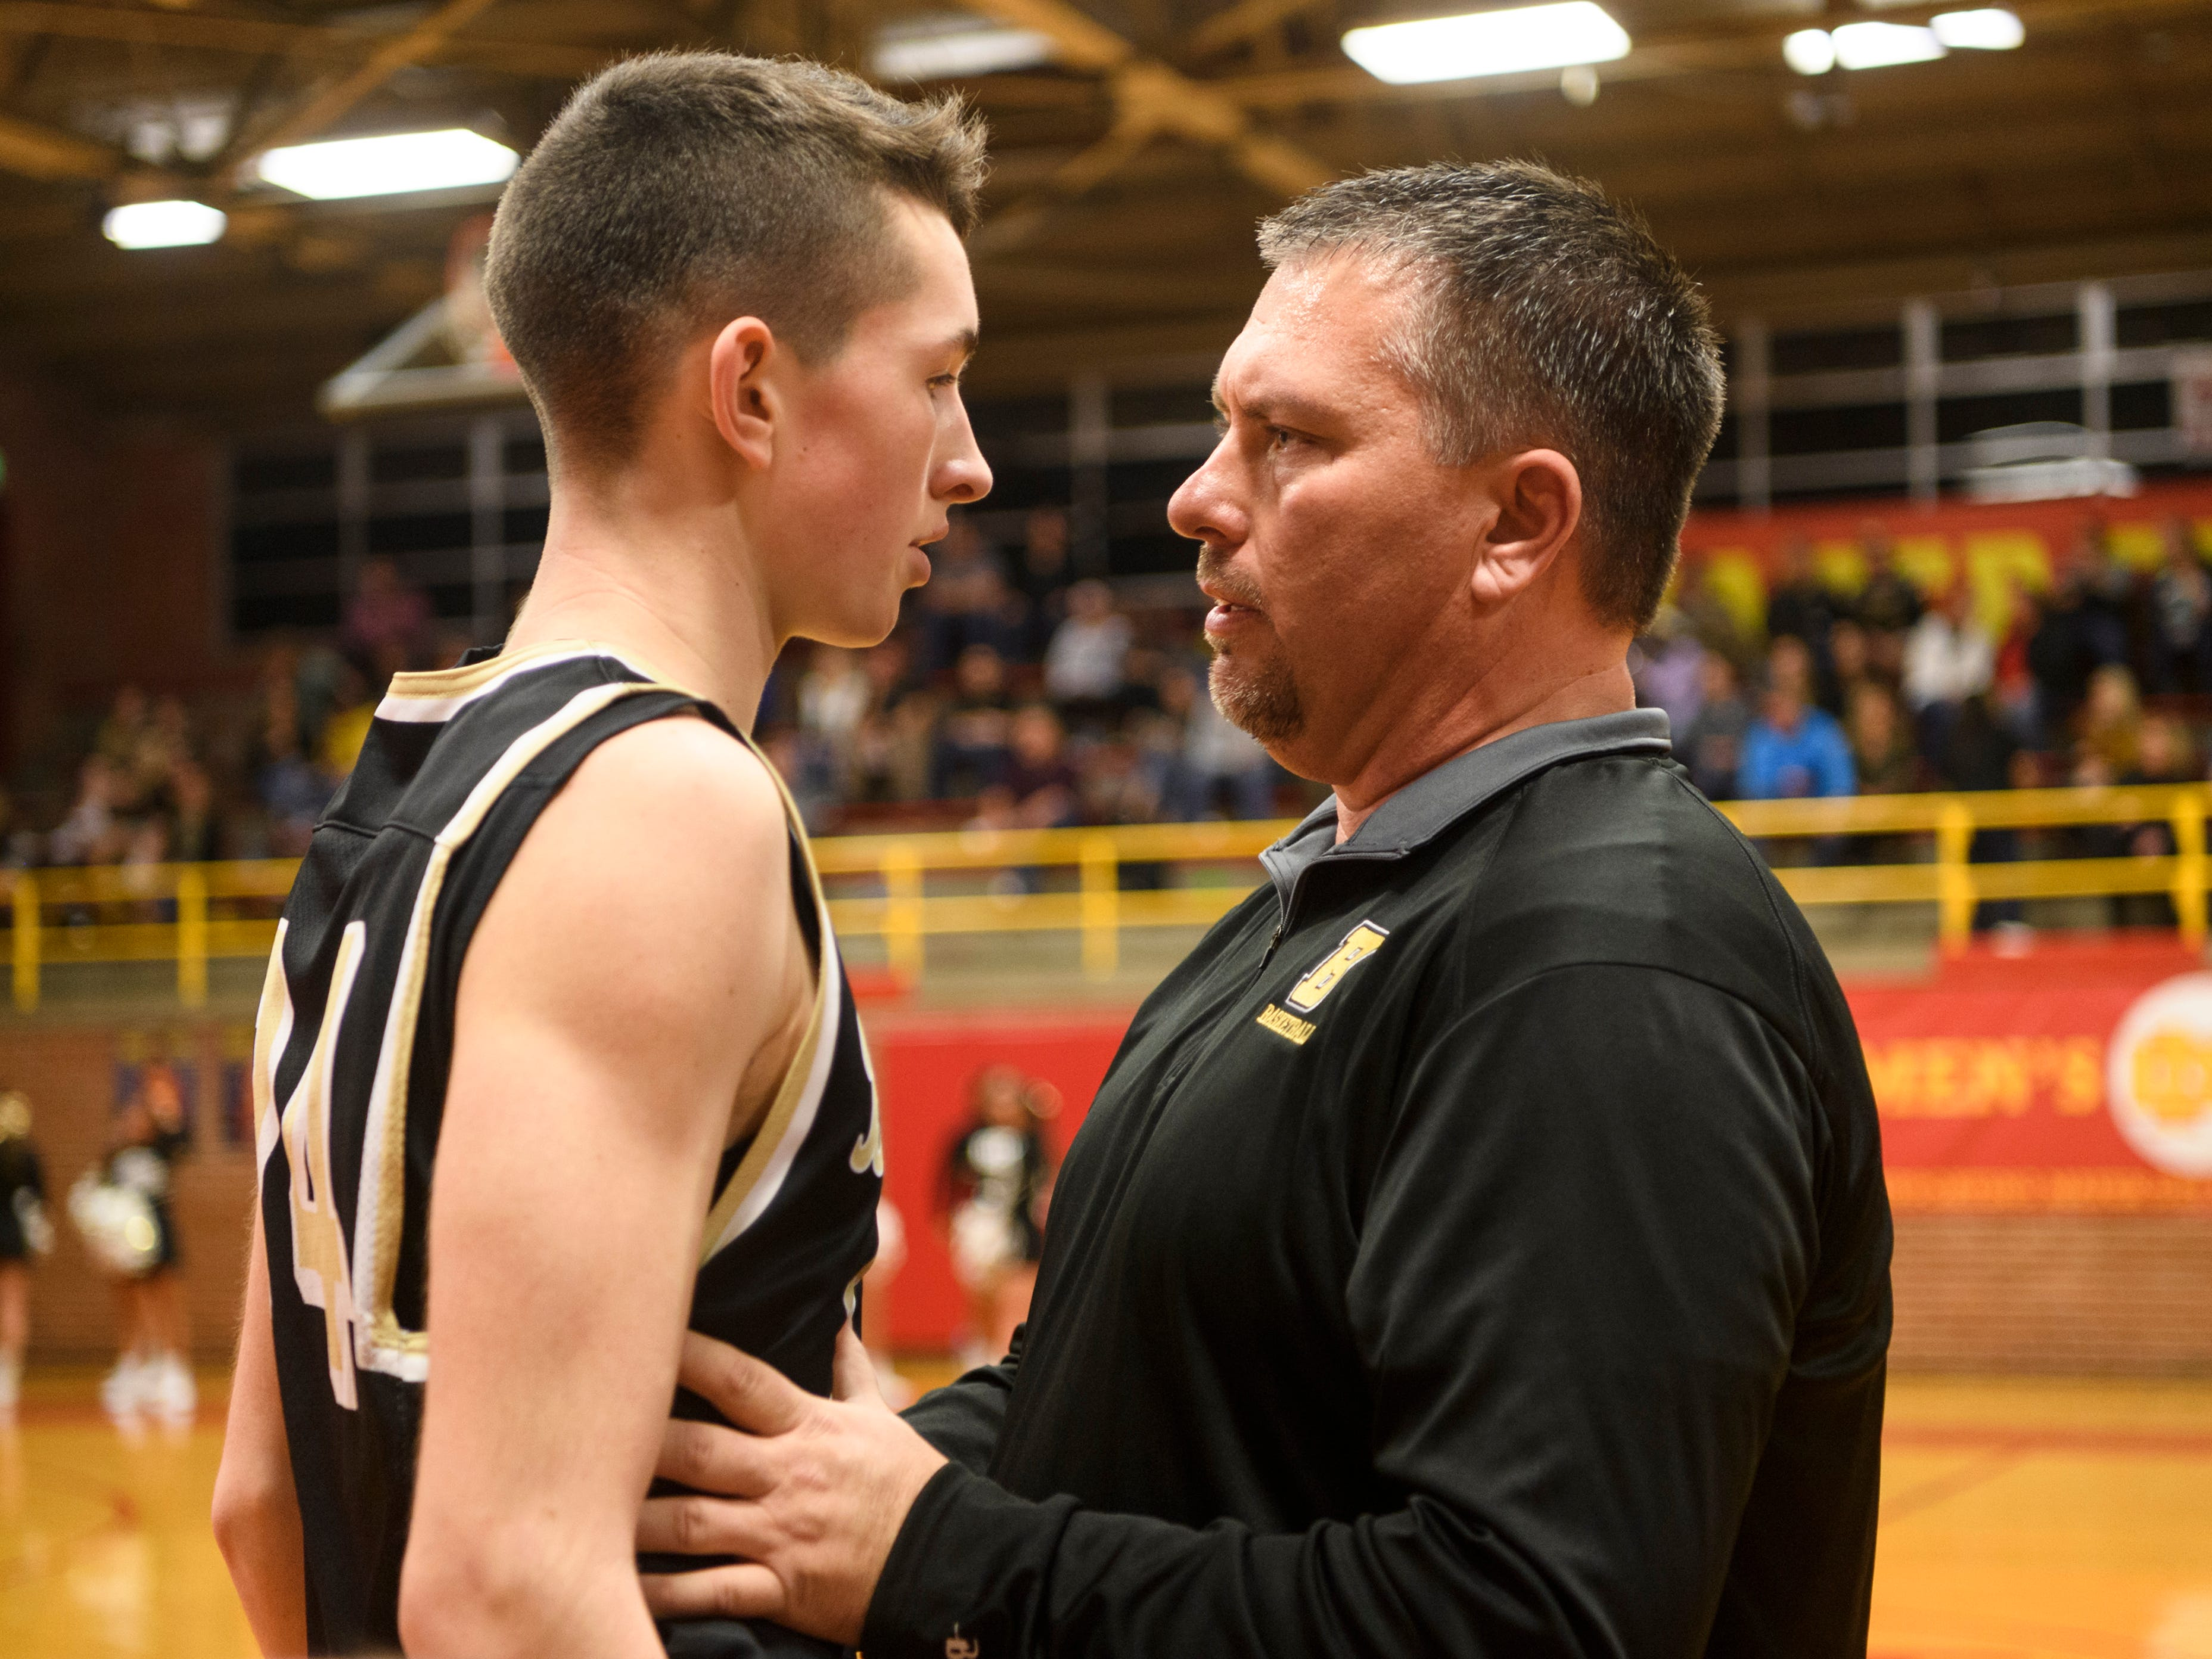 Boonville Head Coach Brian Schoonover talks to Maddux Brunner (24) during the second quarter against the Mater Dei Wildcats at Mater Dei High School in Evansville, Ind., Saturday, Jan. 5, 2019. The Wildcats defeated the Pioneers, 93-65.